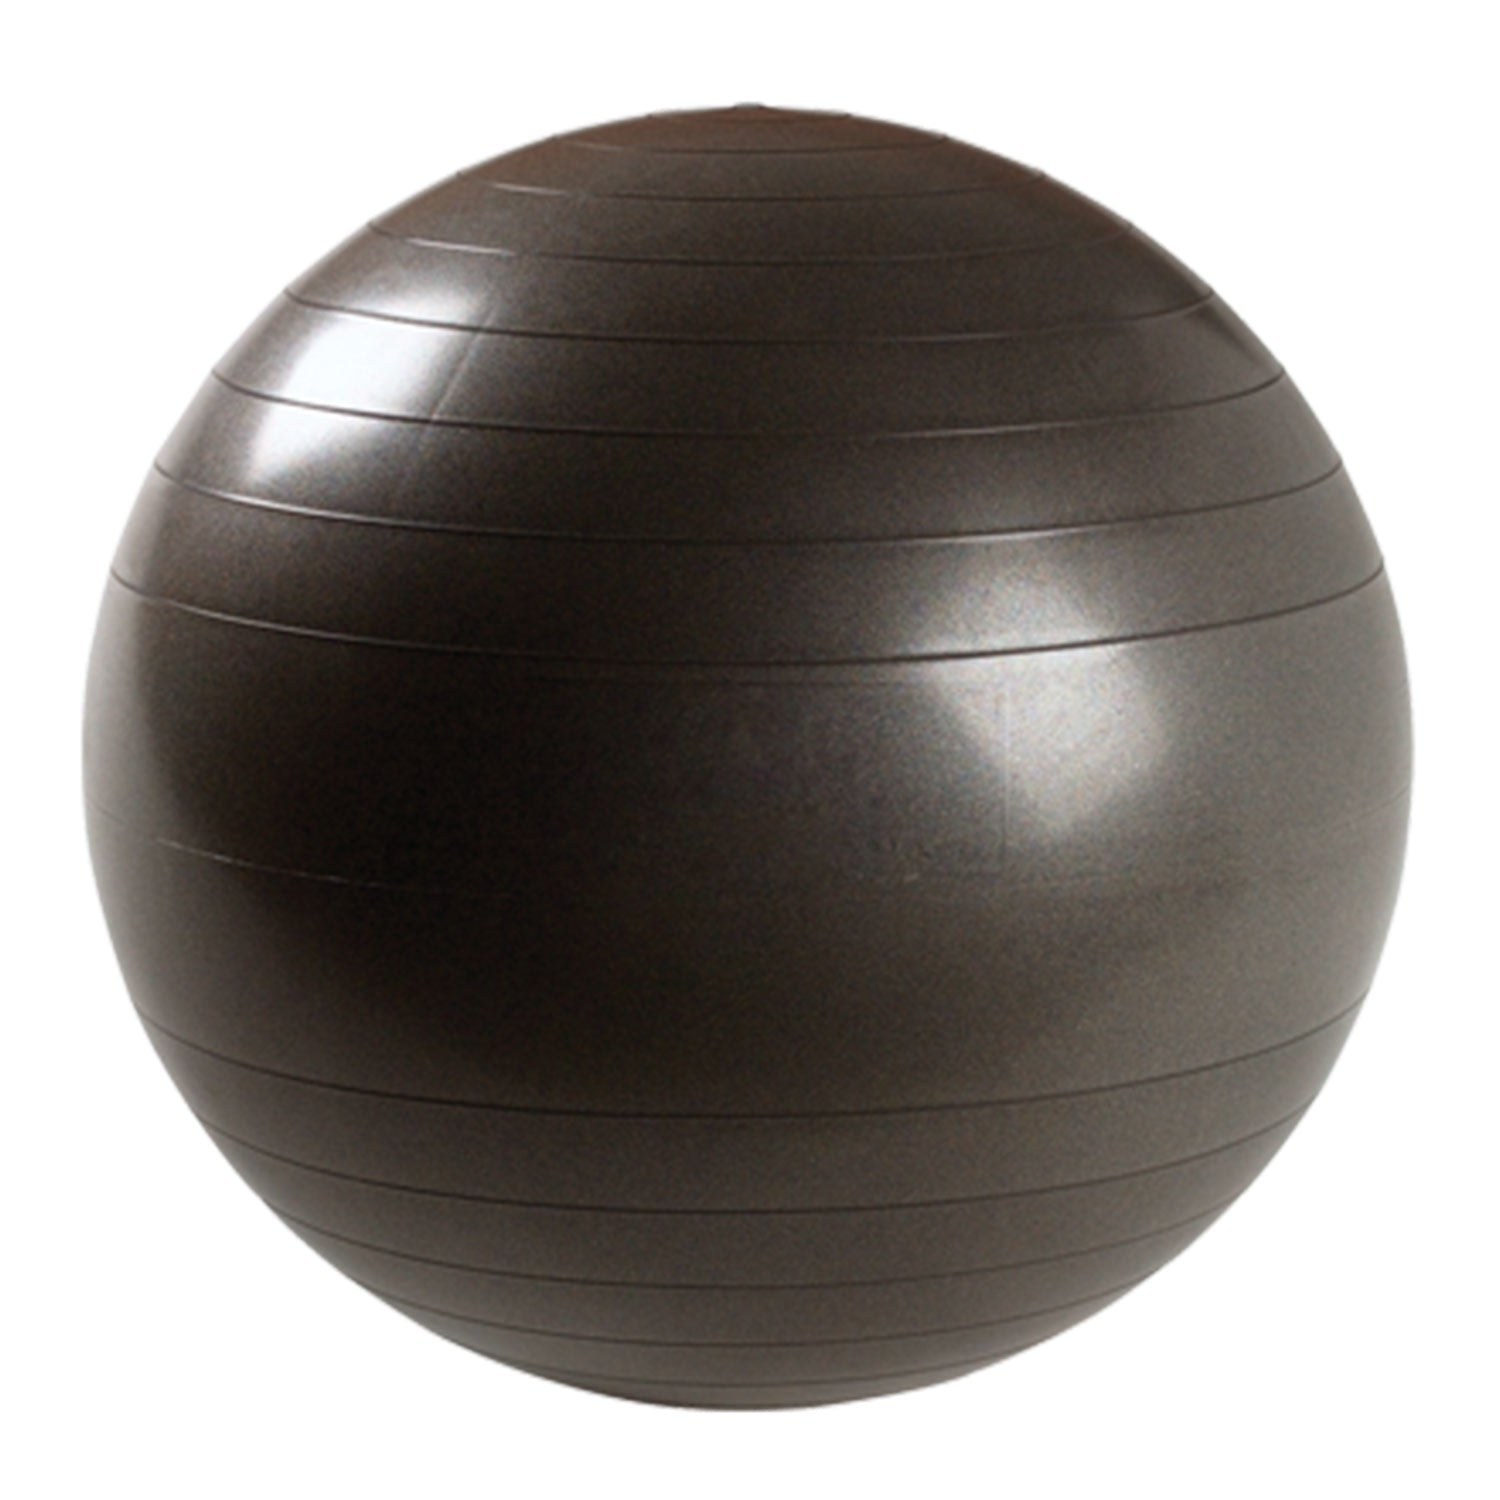 Anti-Burst Exercise Body Ball 26 inch Black - Raze The Barr LLC